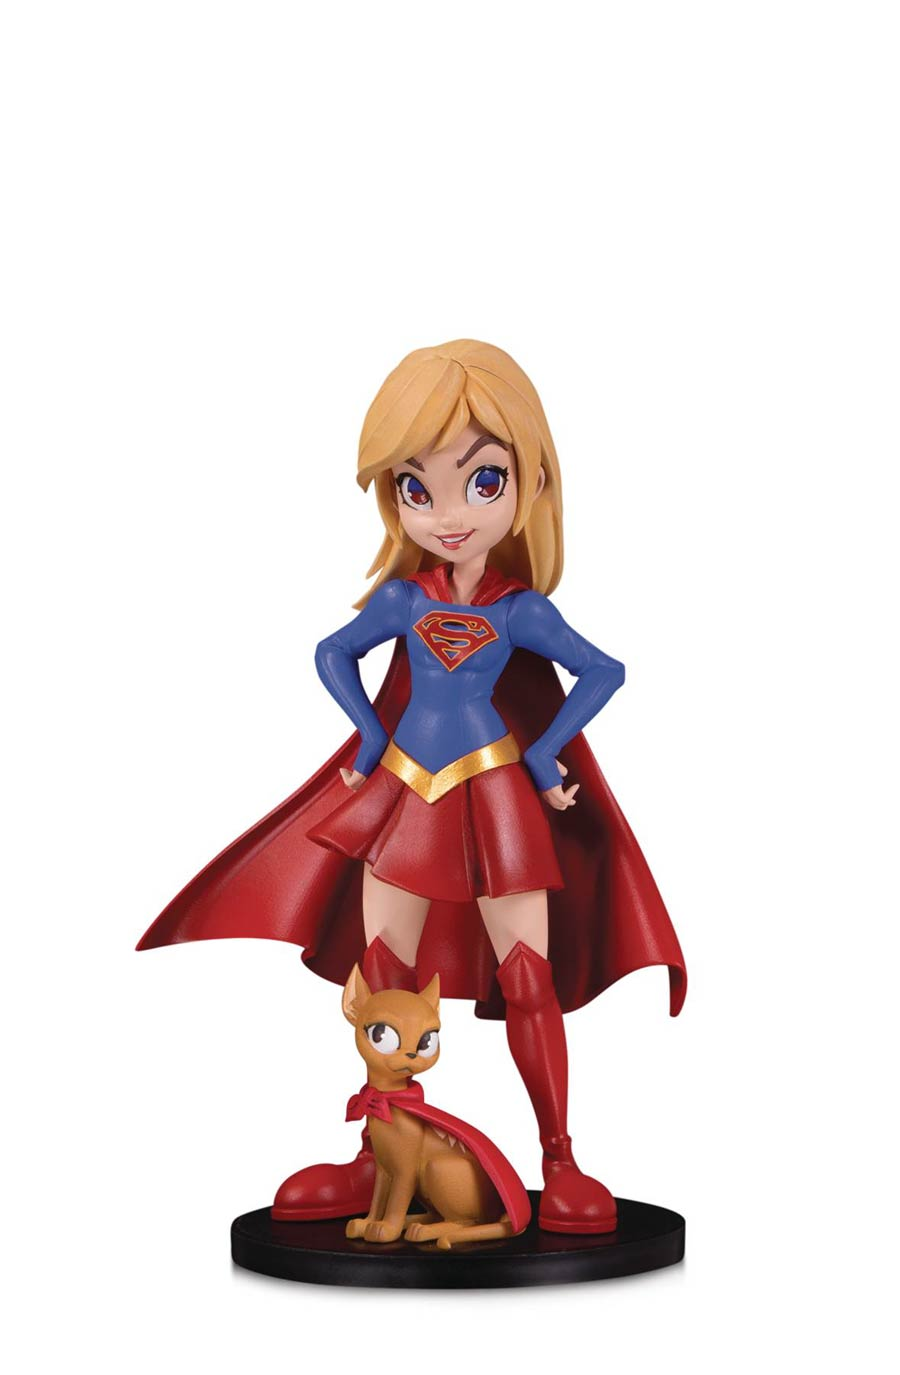 DC Artists Alley Designer Vinyl Figure By Chrissie Zullo - Supergirl Color Version